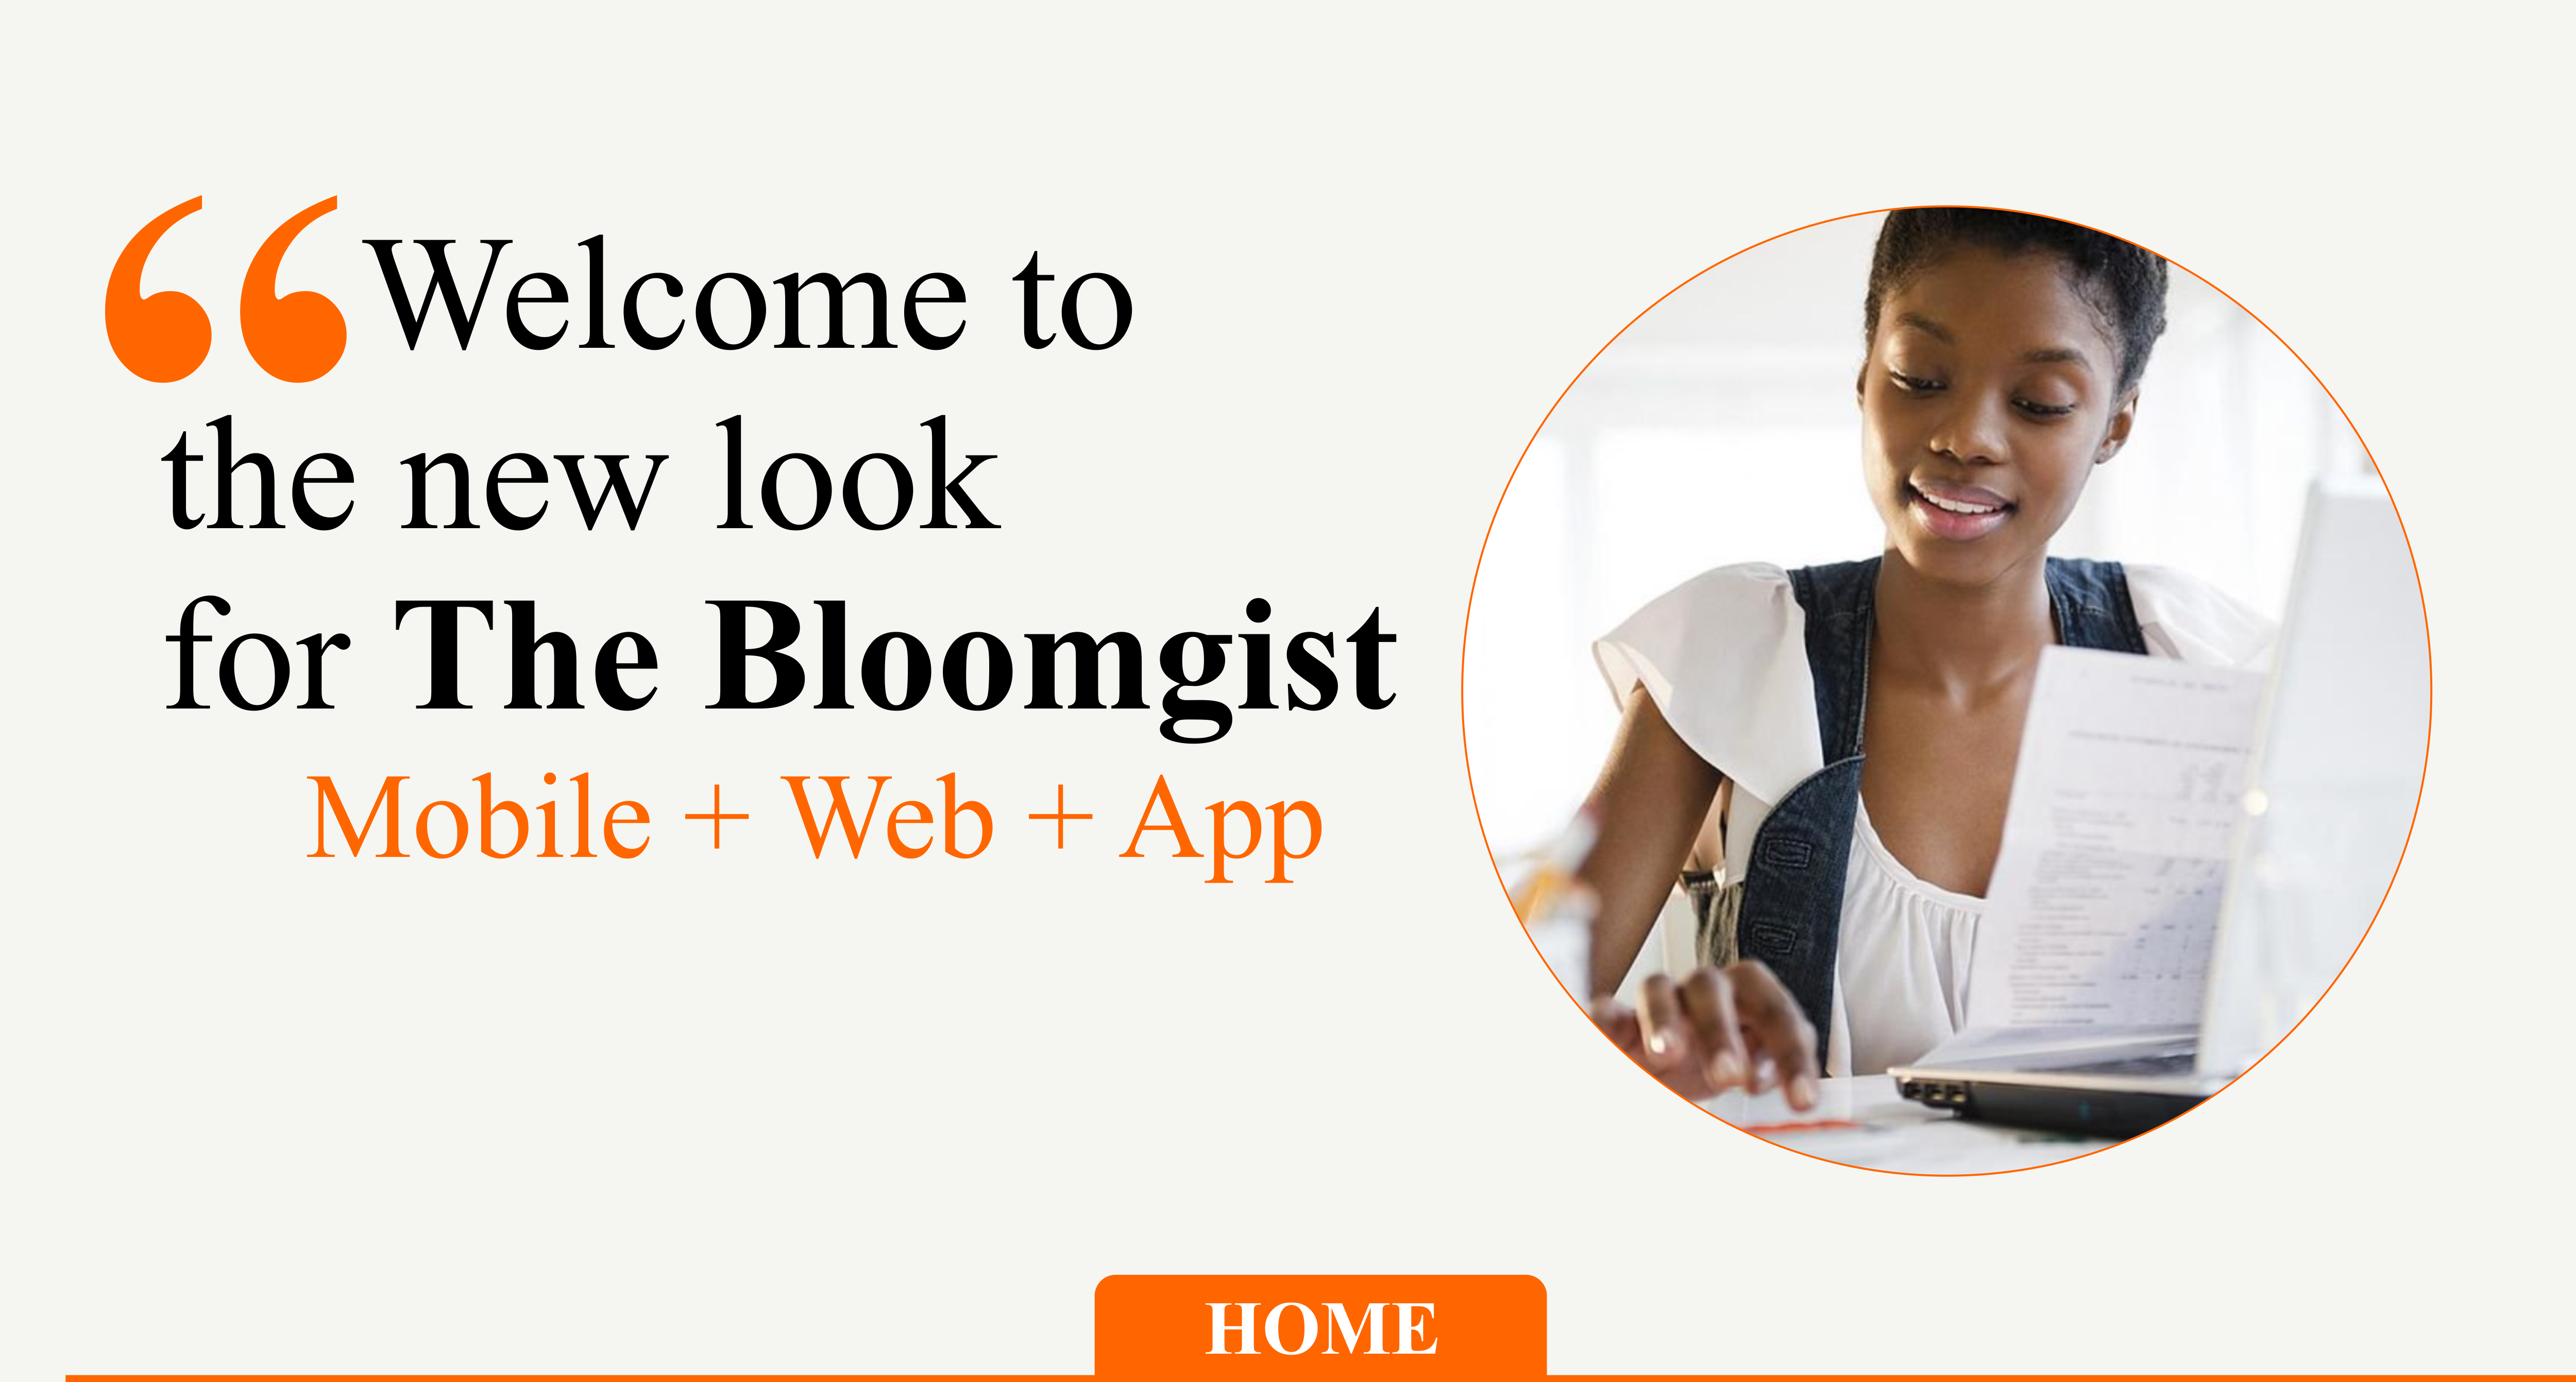 Welcome to the new look for the Bloomgist